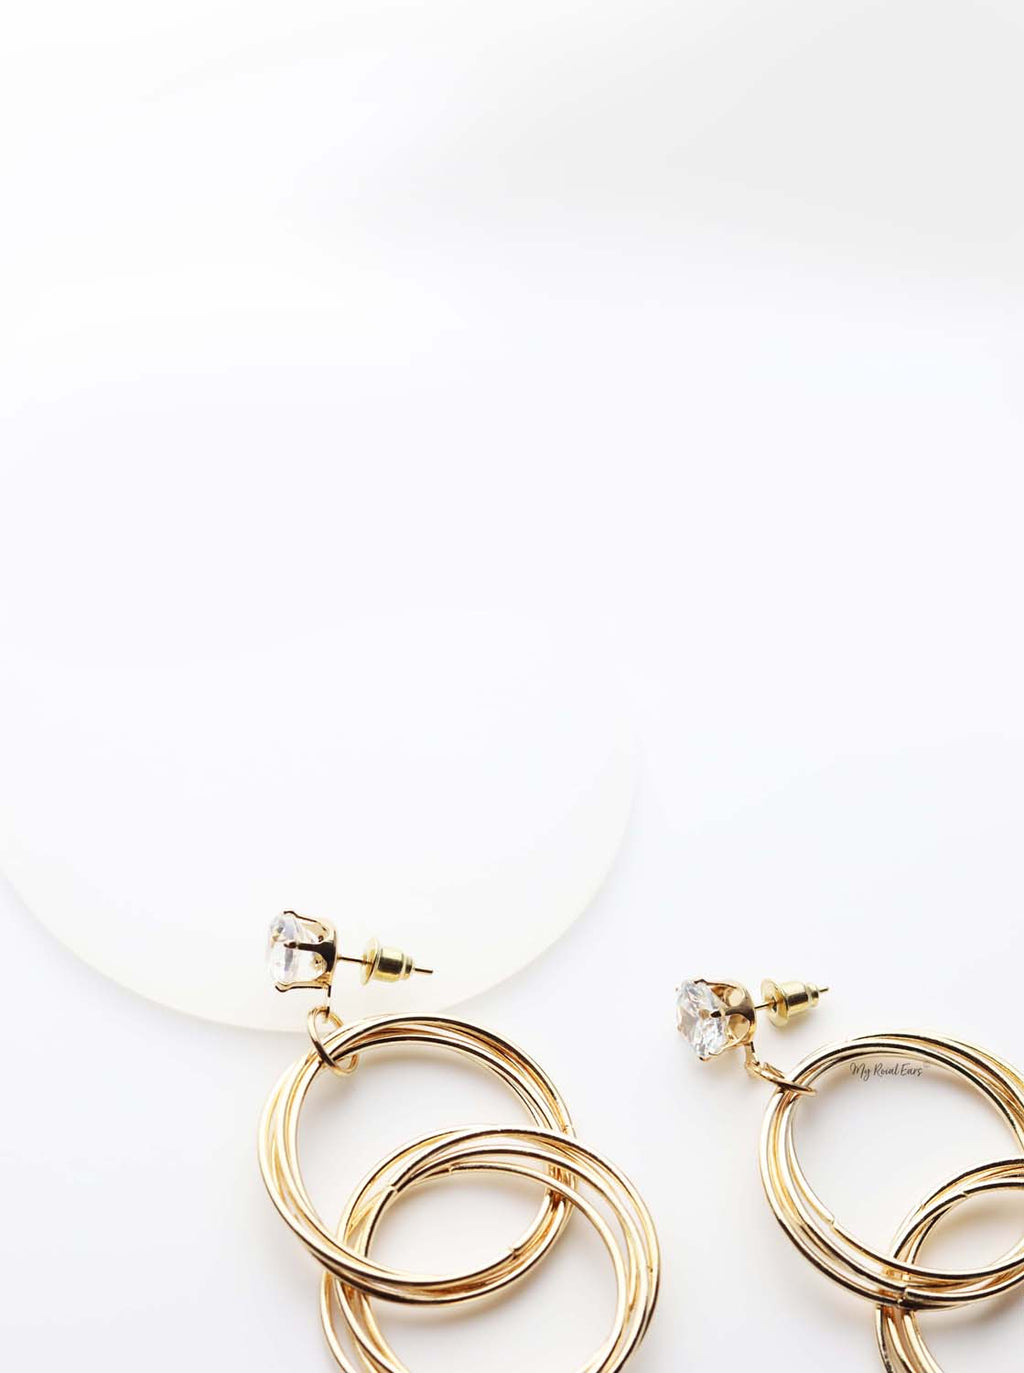 Athena- gold plated crystal double hoop drop earrings - My Roial Ears LTD